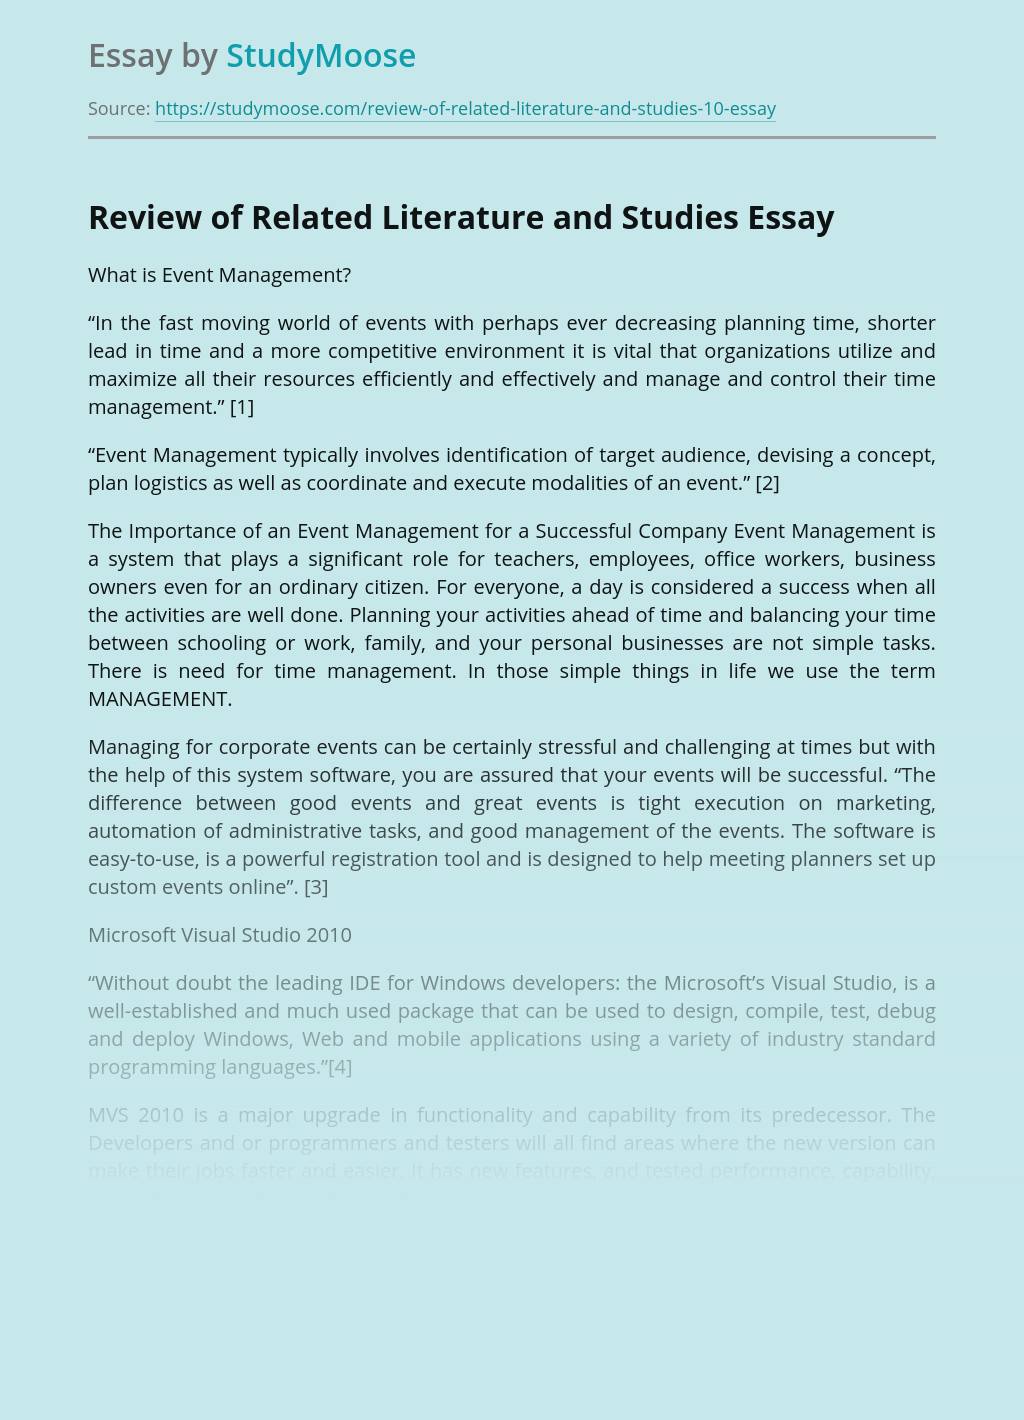 Review of Related Literature and Studies in Event Management